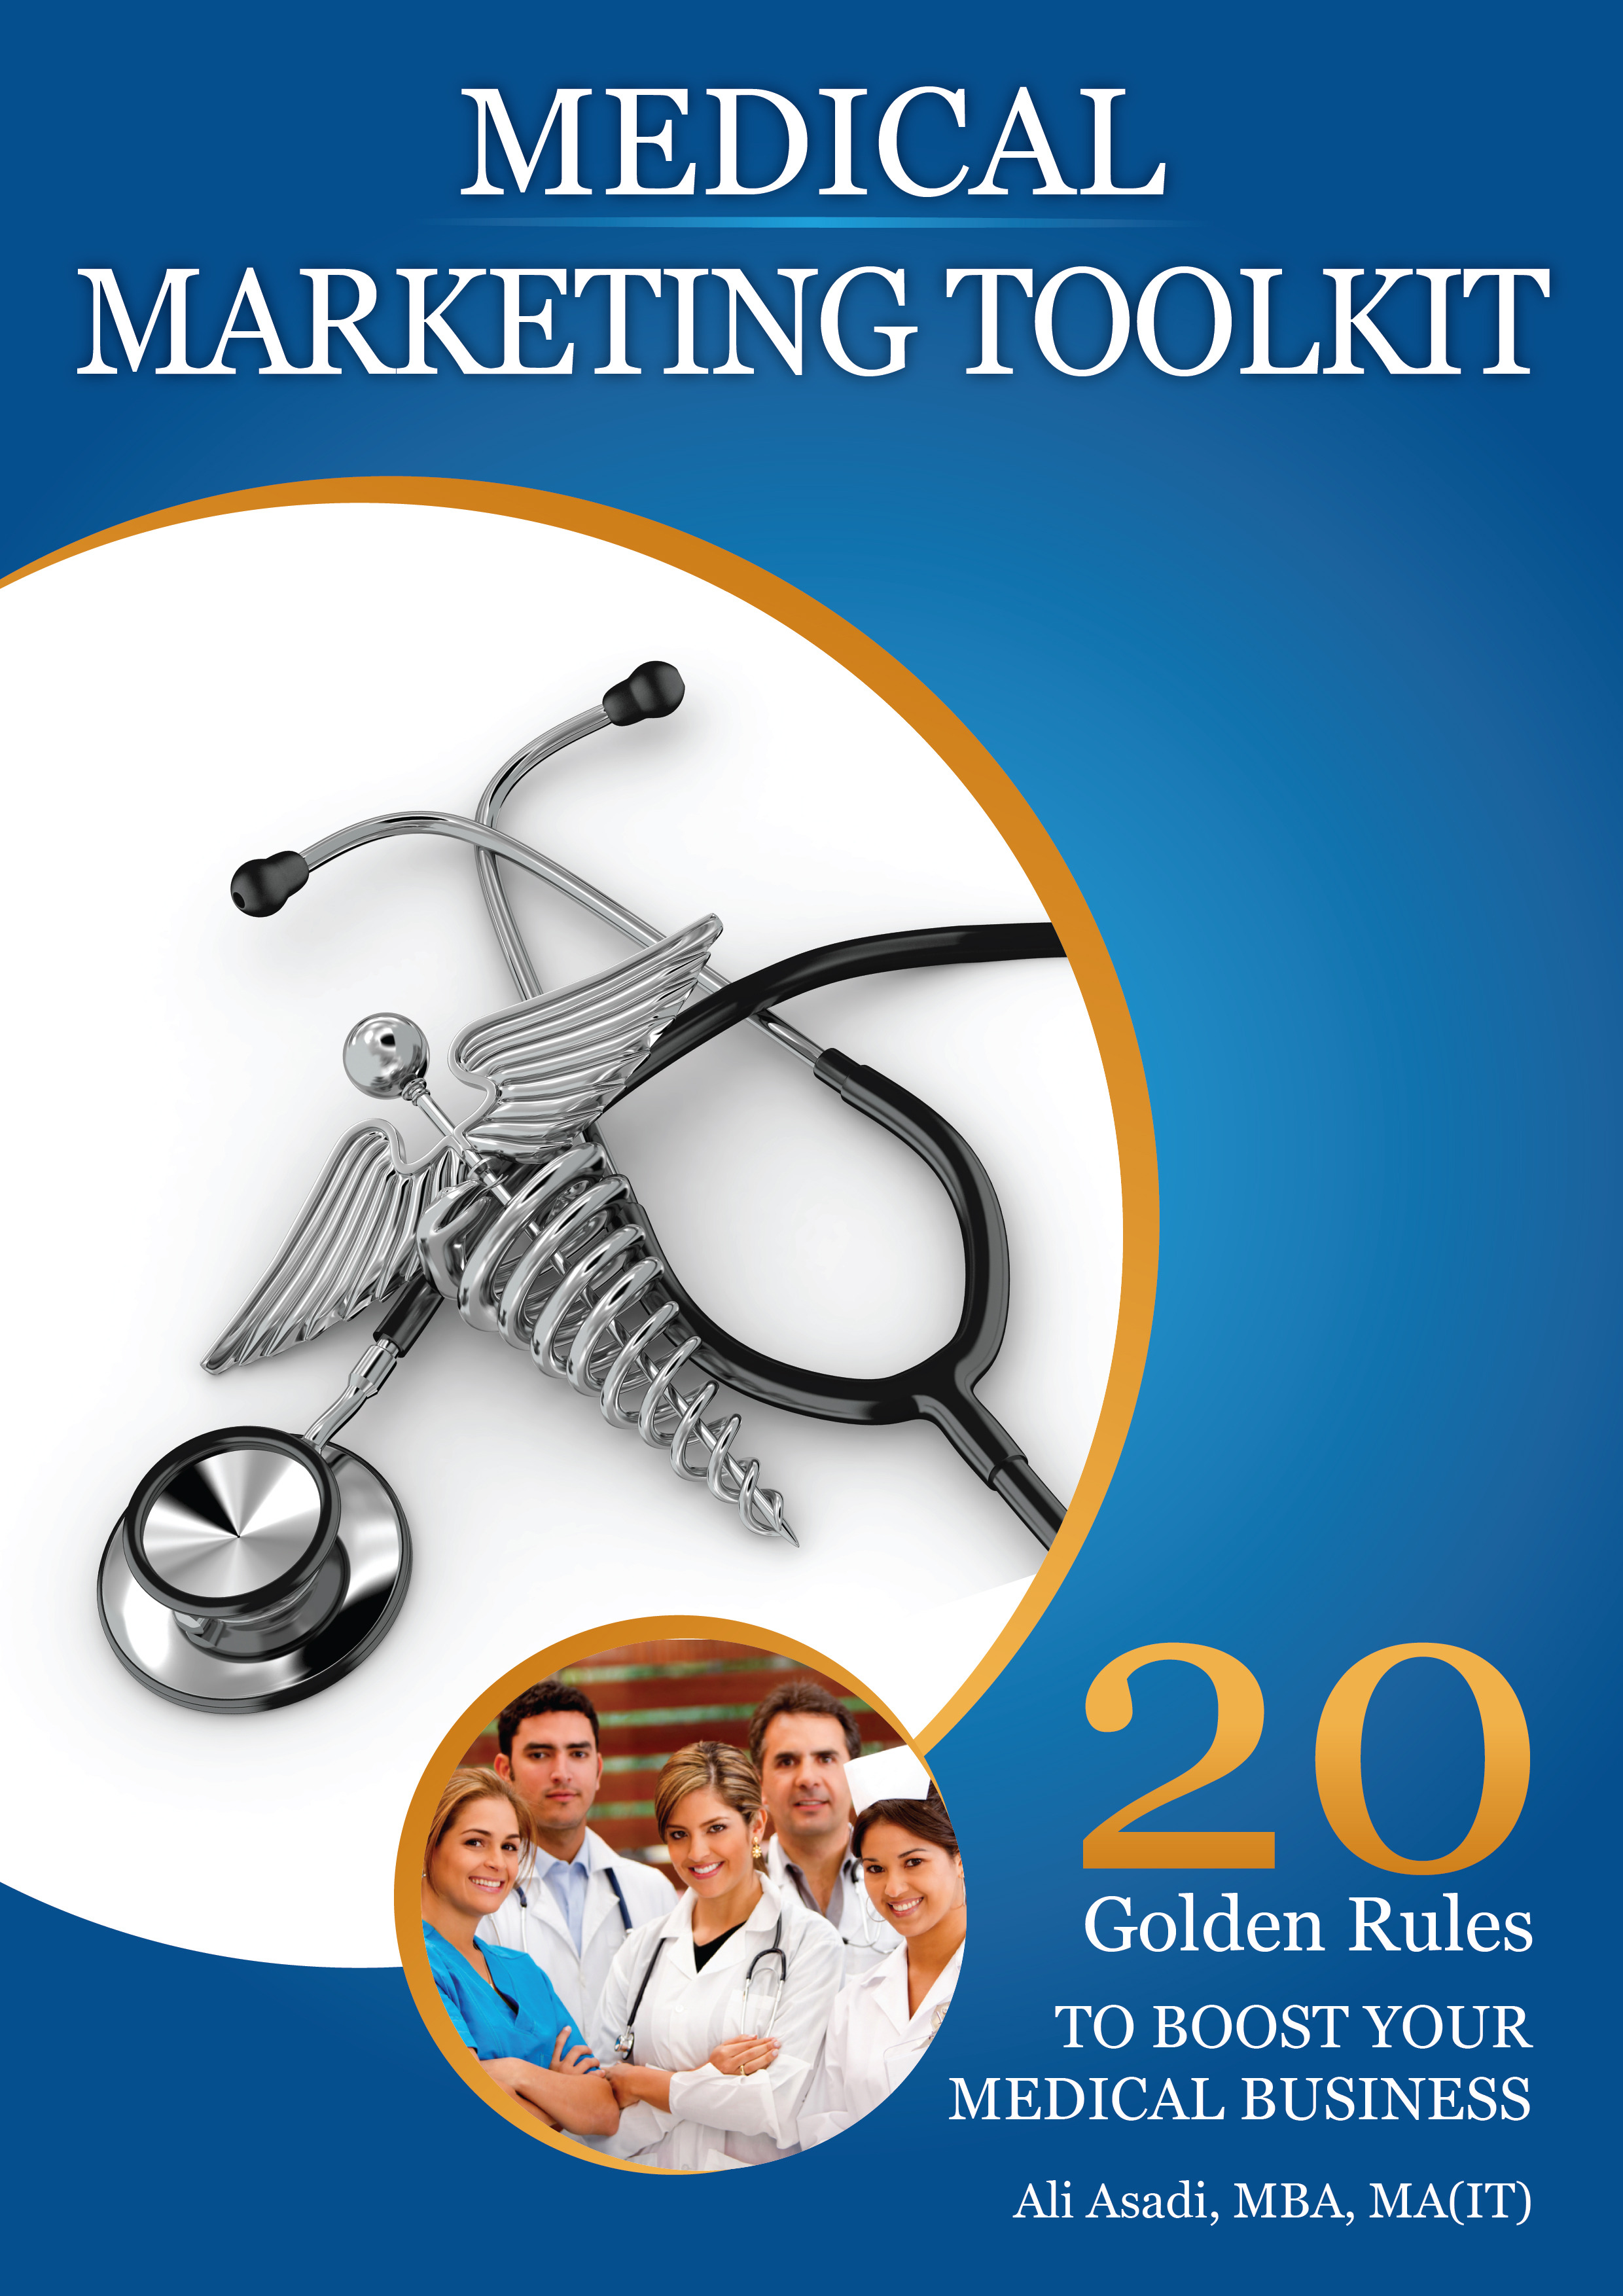 Medical Marketing Toolkit (20 Golden Rules to Instantly Boost Your Medical Business)